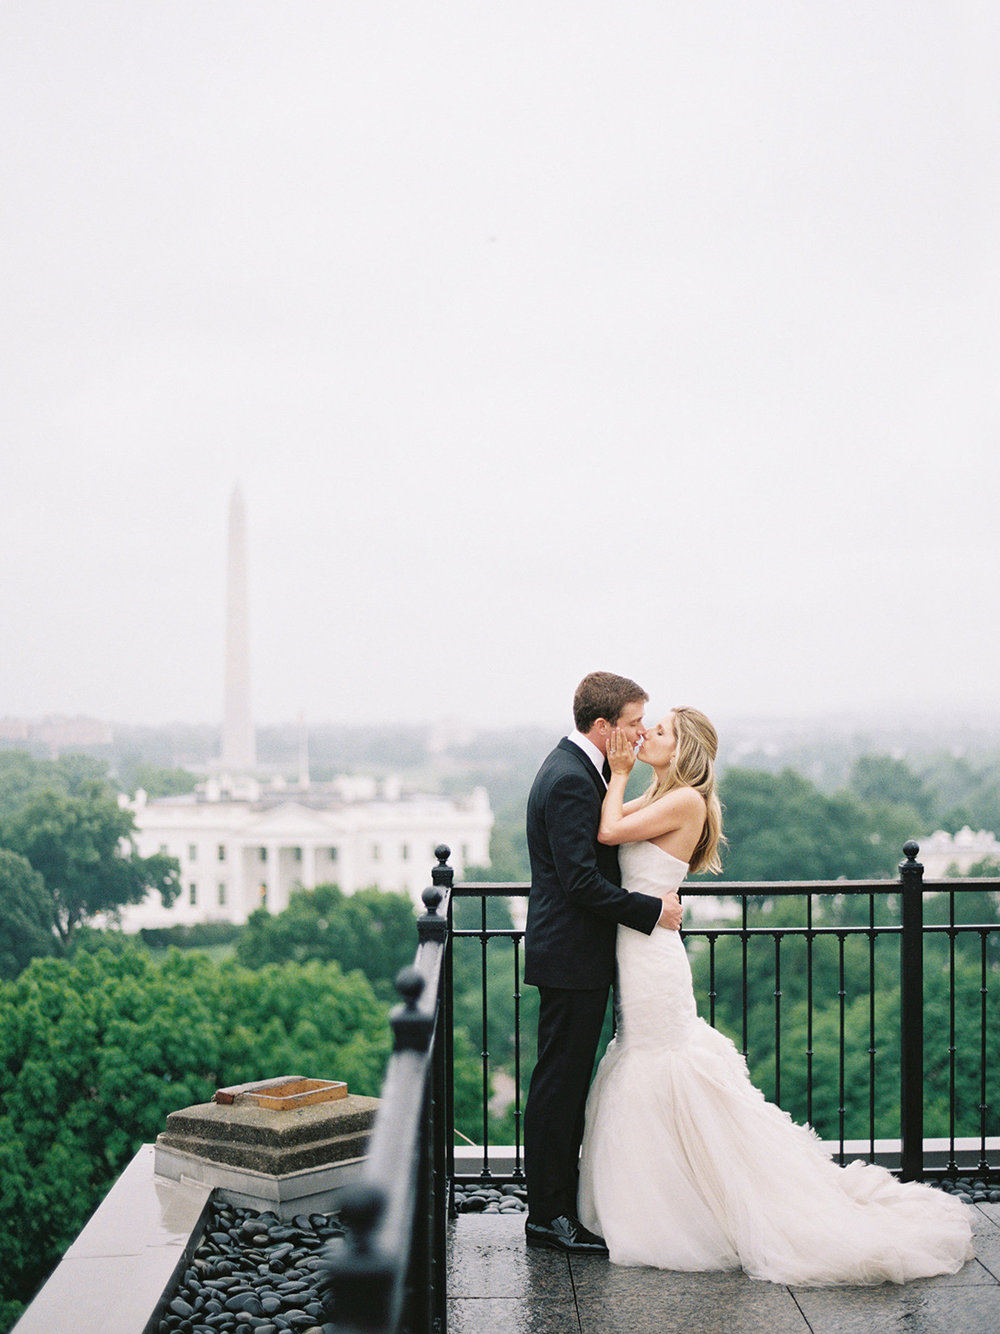 David & Hilary - Washington DC